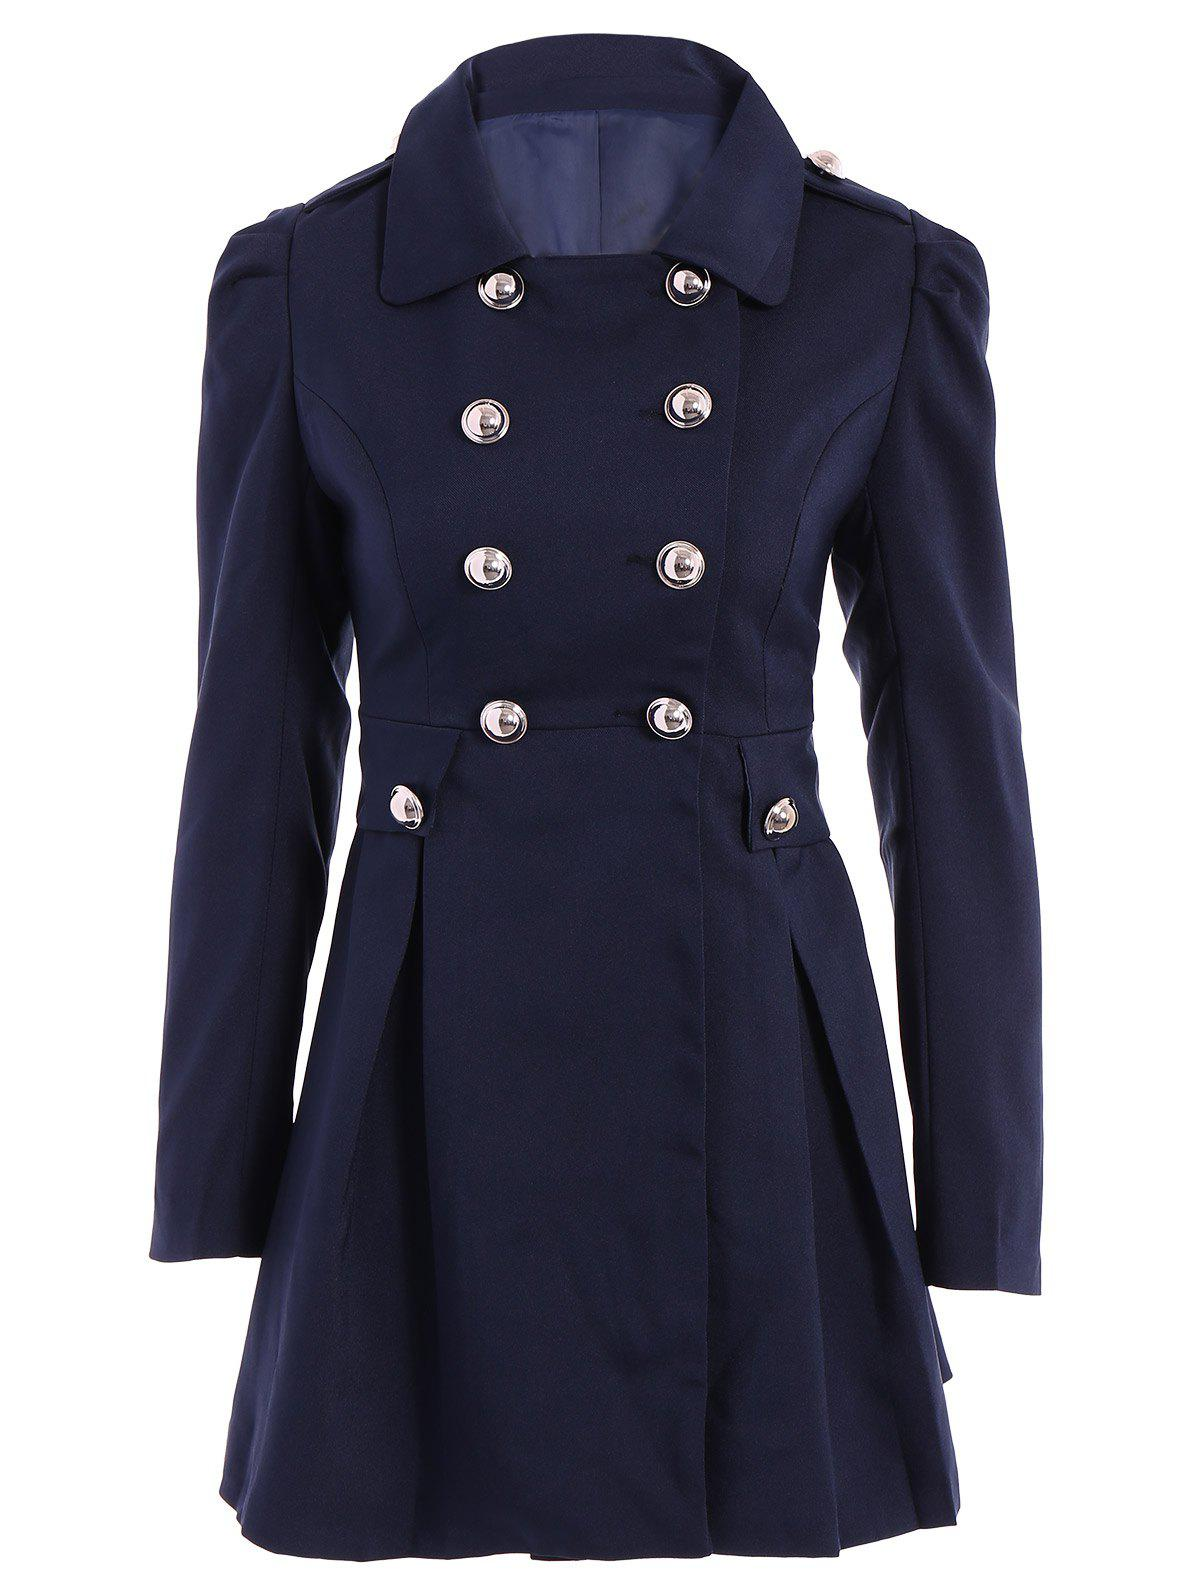 Ladylike Turn-Down Collar Solid Color Epaulet Puff Sleeves Ruffled Double-Breasted Trench CoatWomen<br><br><br>Size: M<br>Color: PURPLISH BLUE